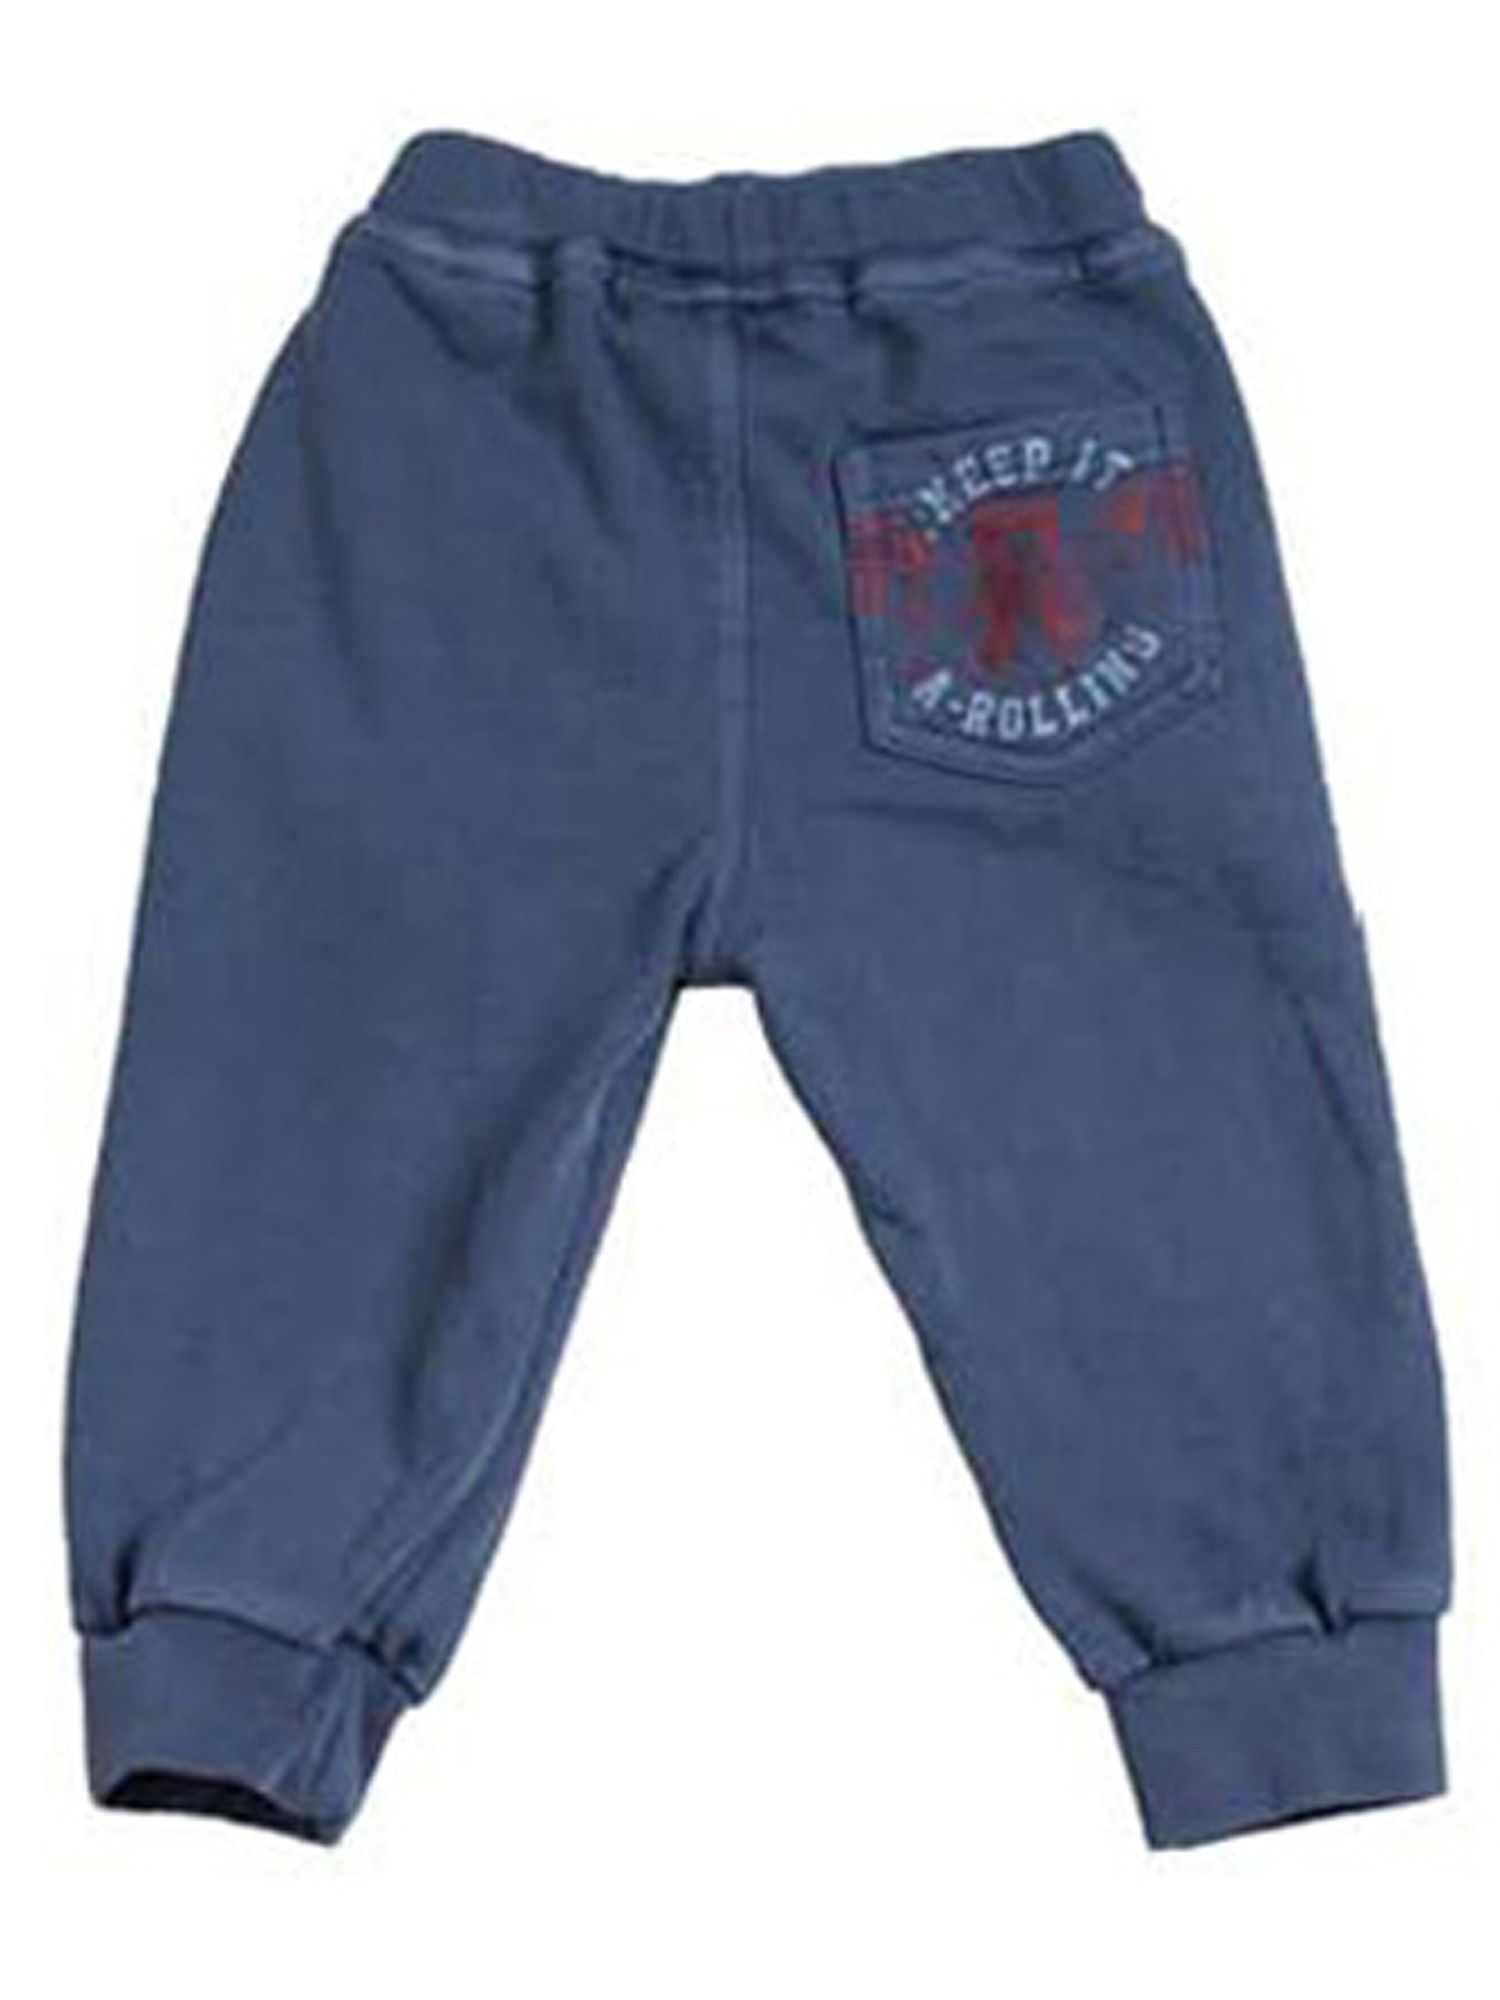 Boys delave fleece joggers